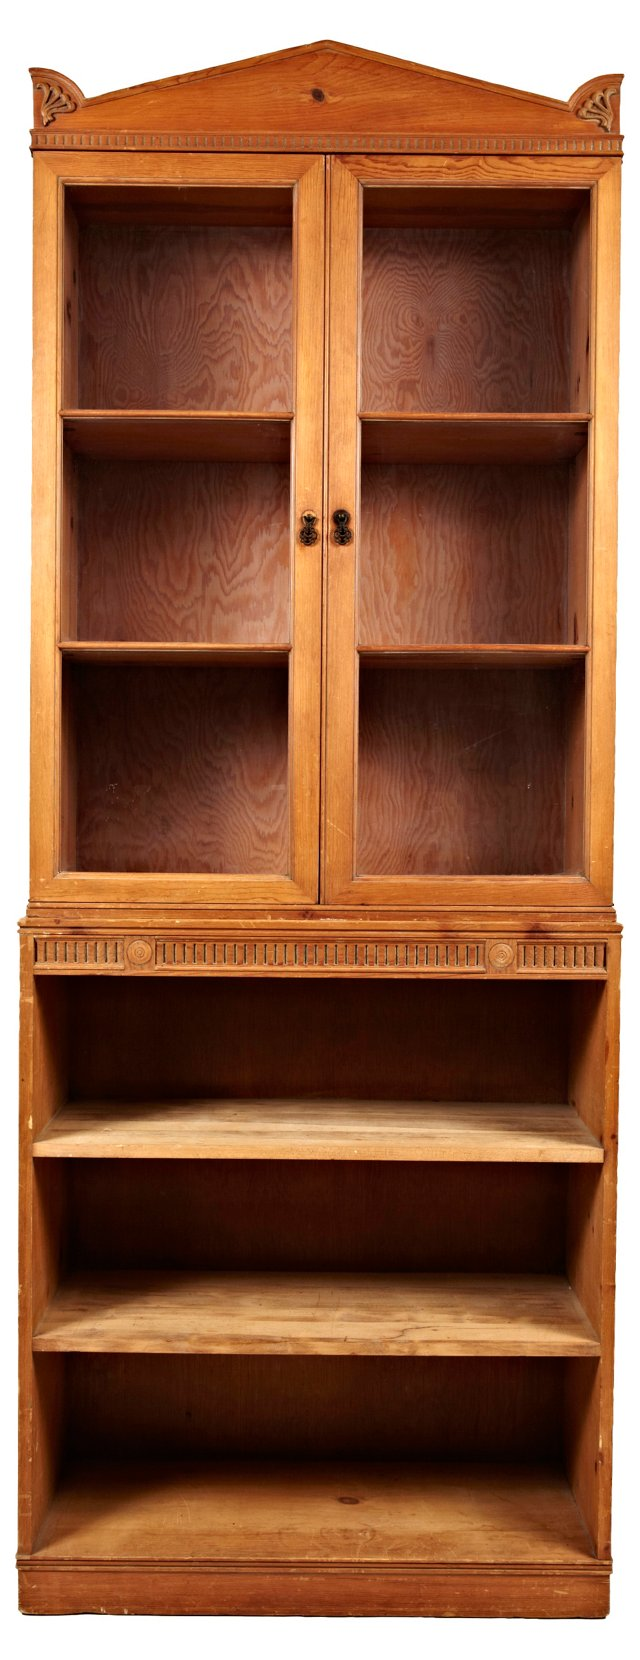 Neoclassical-Style Bookcase